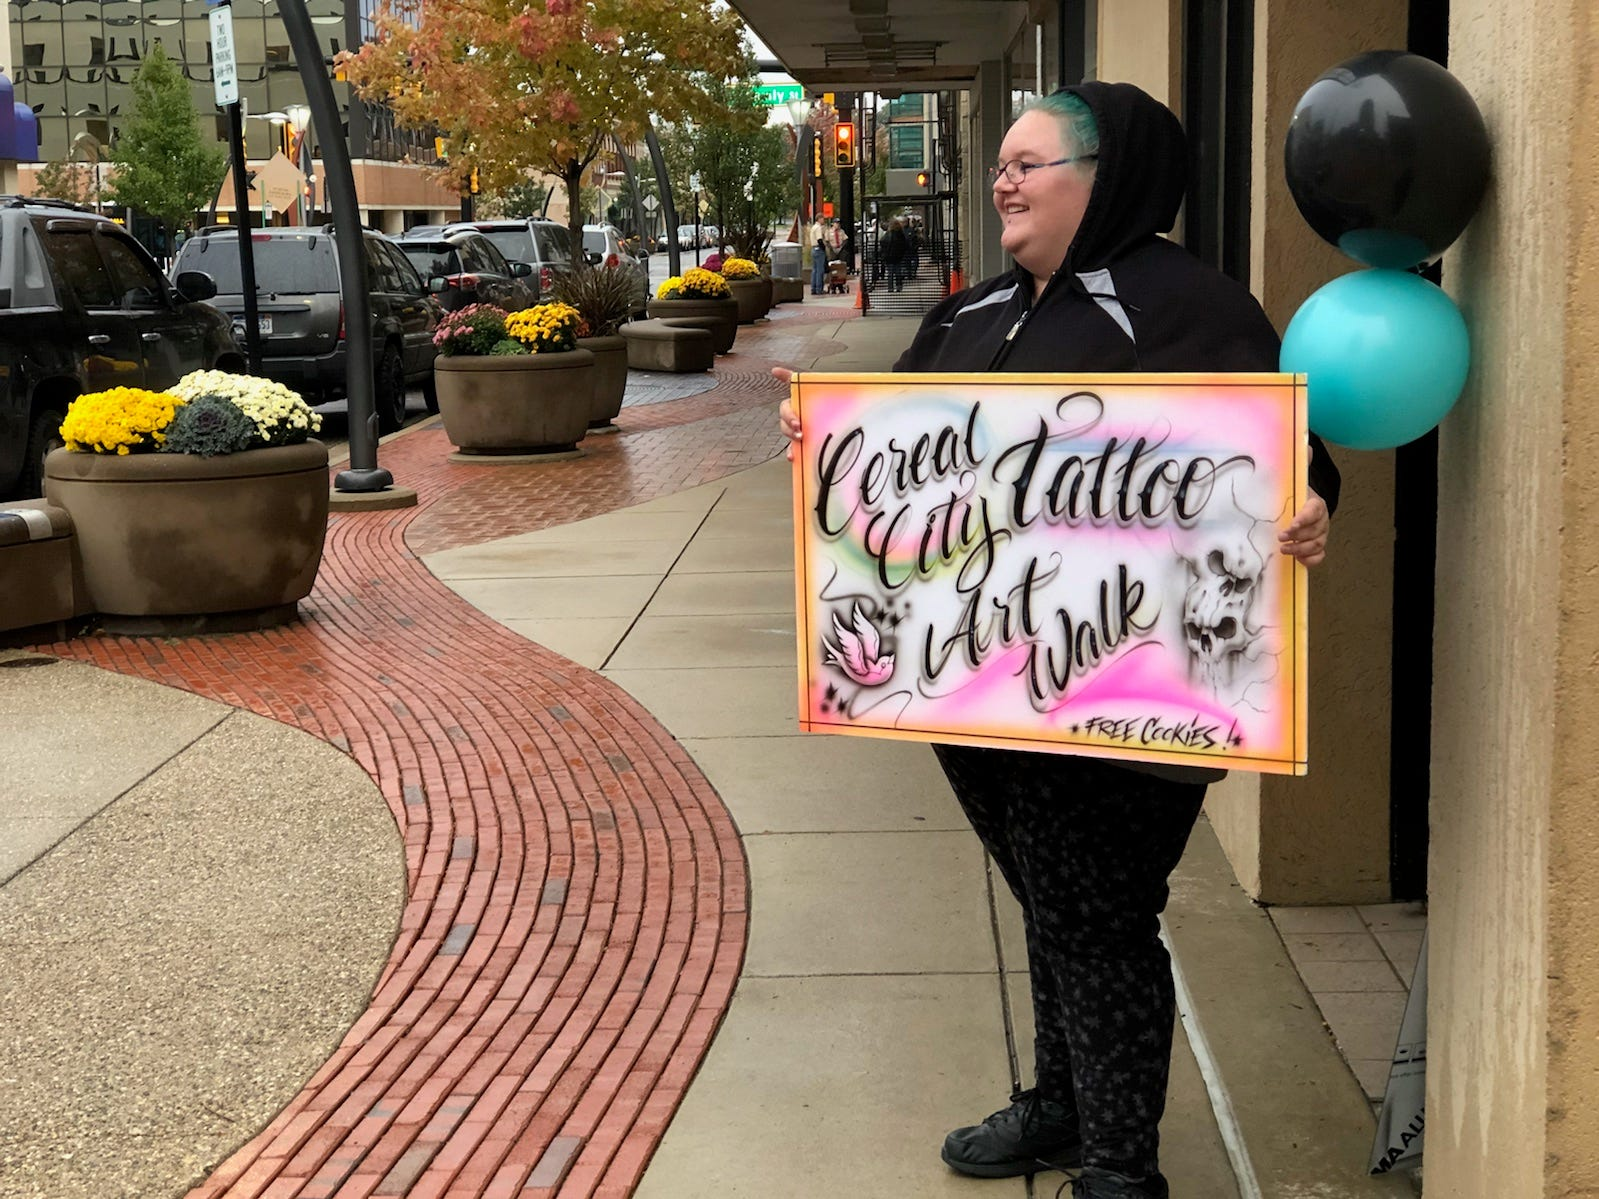 Mindi Koole of Cereal City Tattoo worked to lure people in to see art and eat cookies during Fall into the Arts.